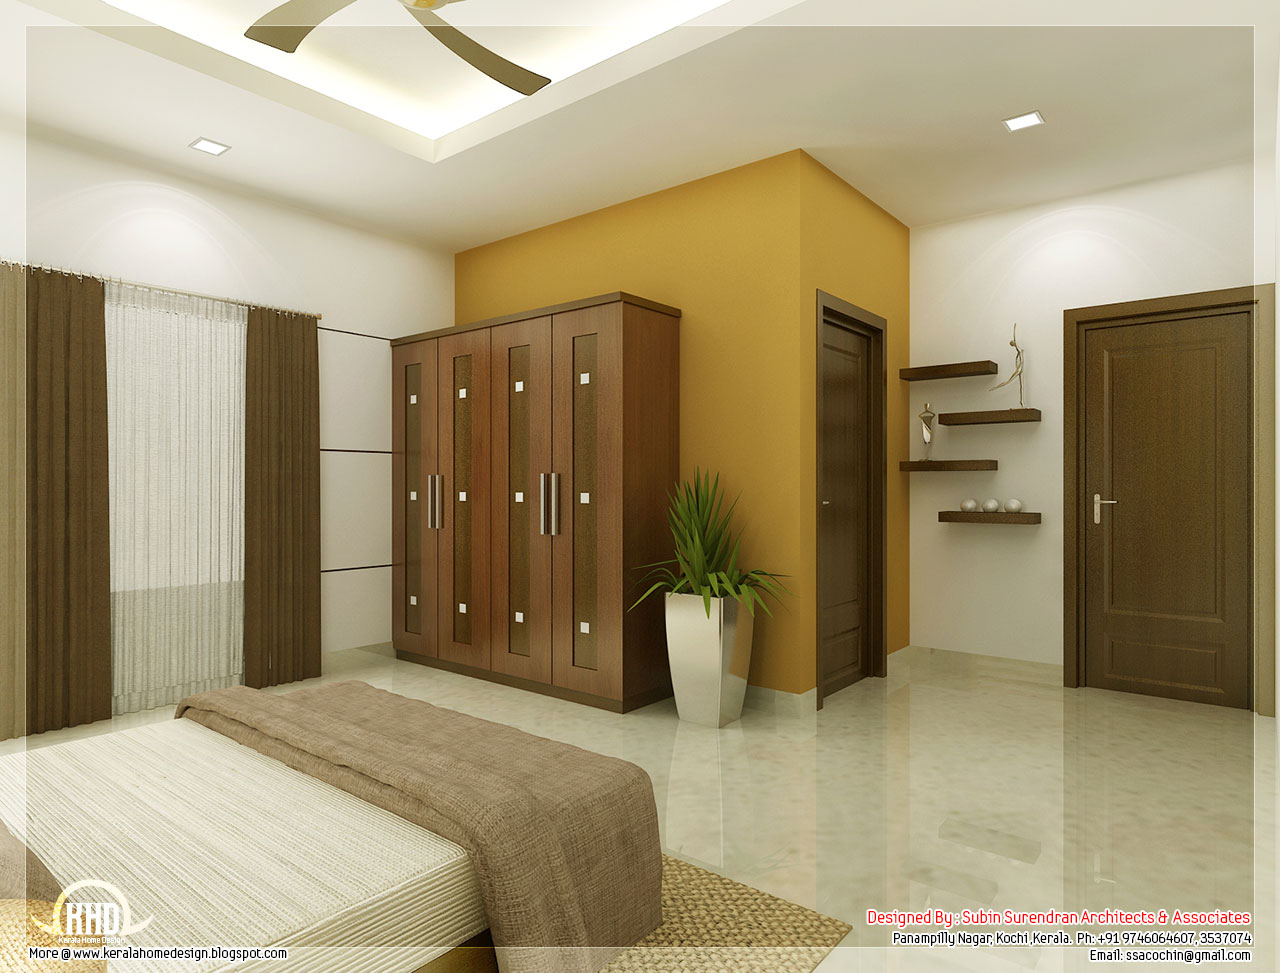 Beautiful bedroom interior designs kerala house design Low cost interior design ideas india